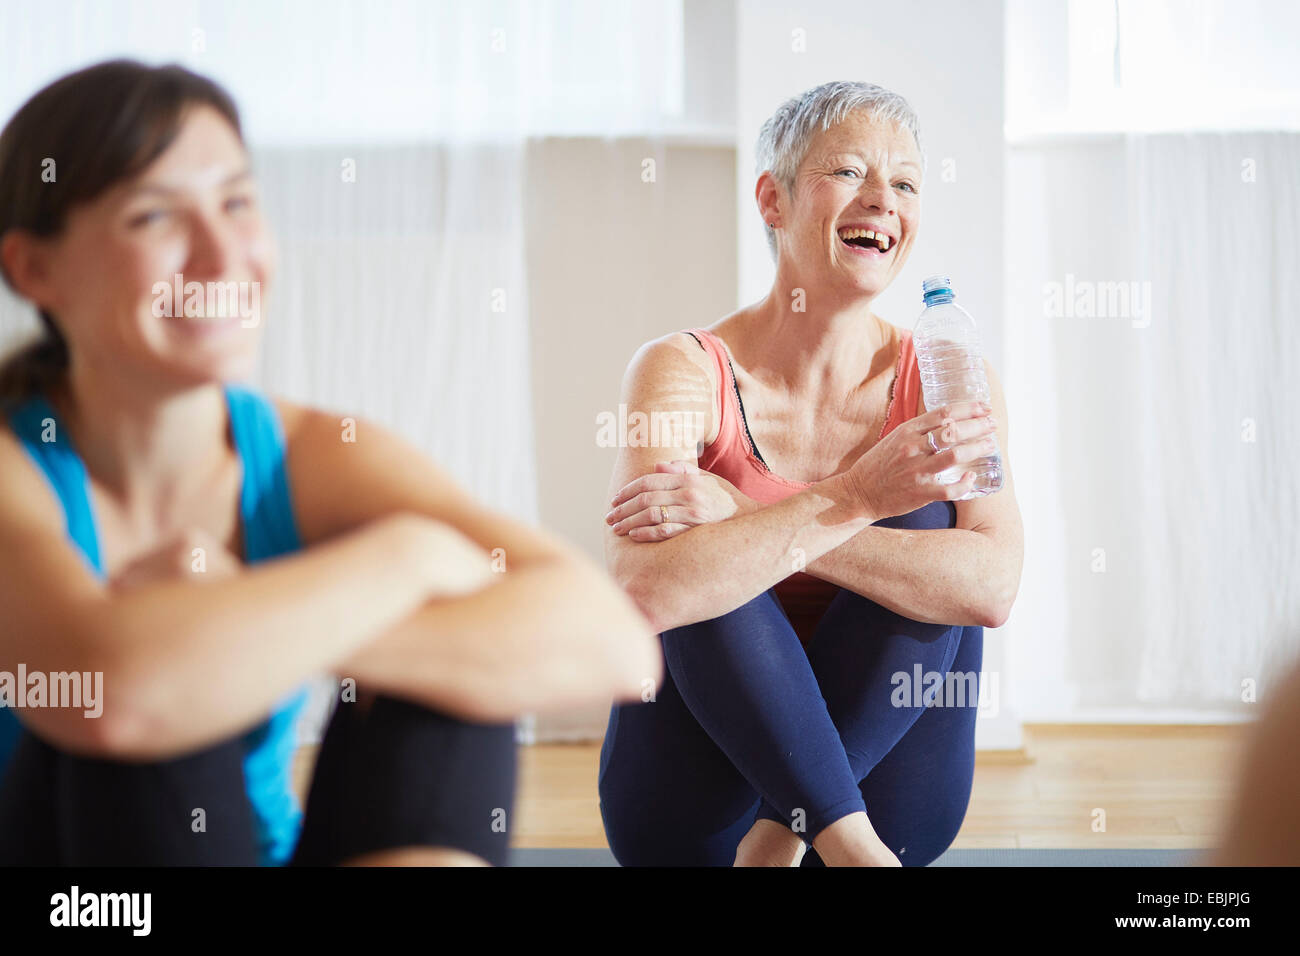 Two women taking a break in pilates class - Stock Image